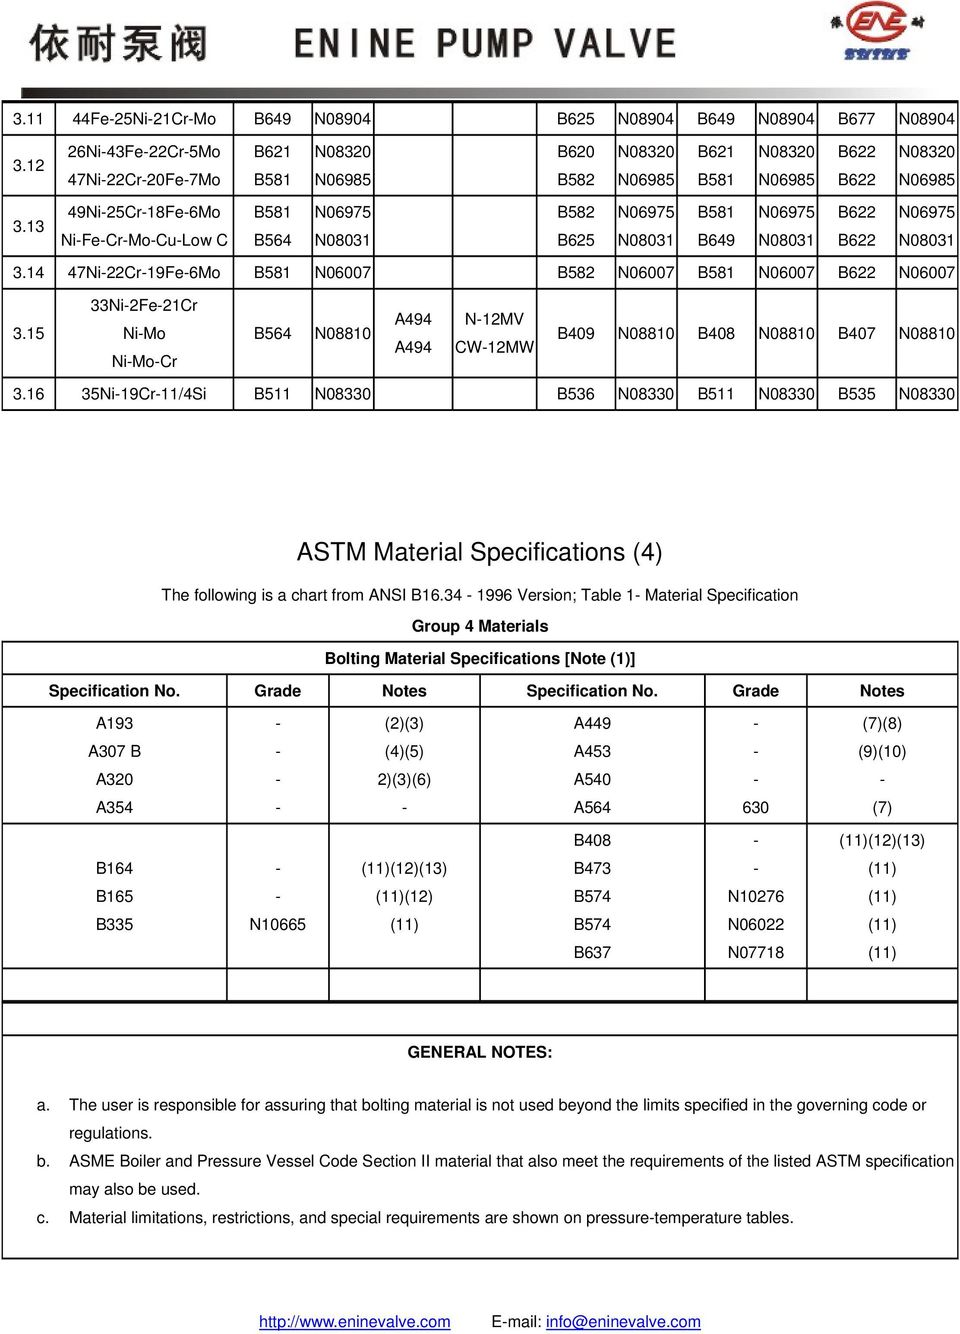 ASTM Material Specifications - PDF